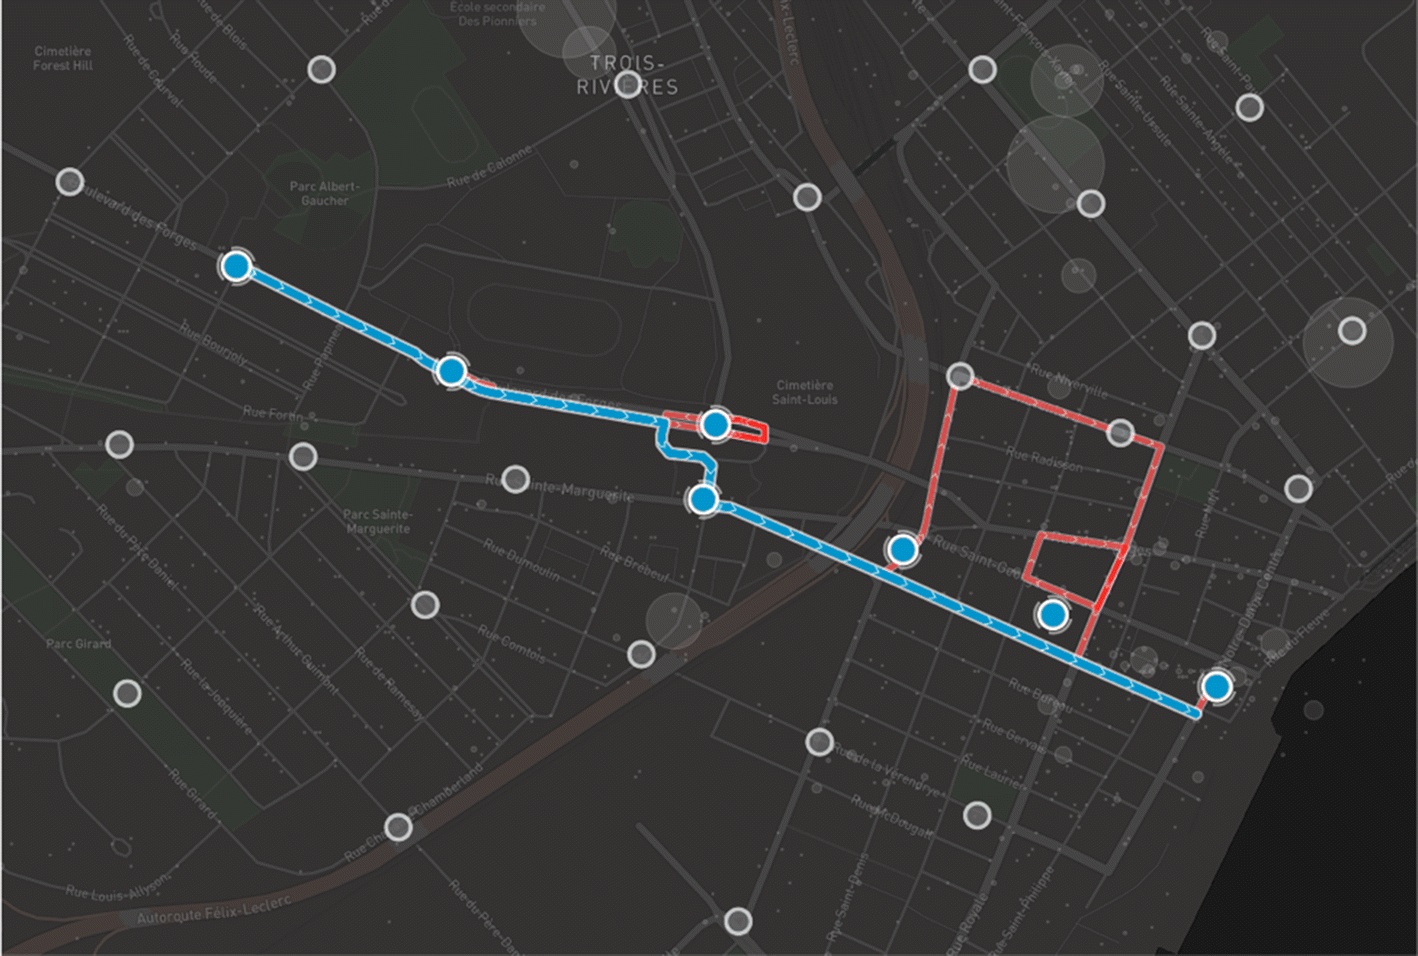 Transit network design using a genetic algorithm with